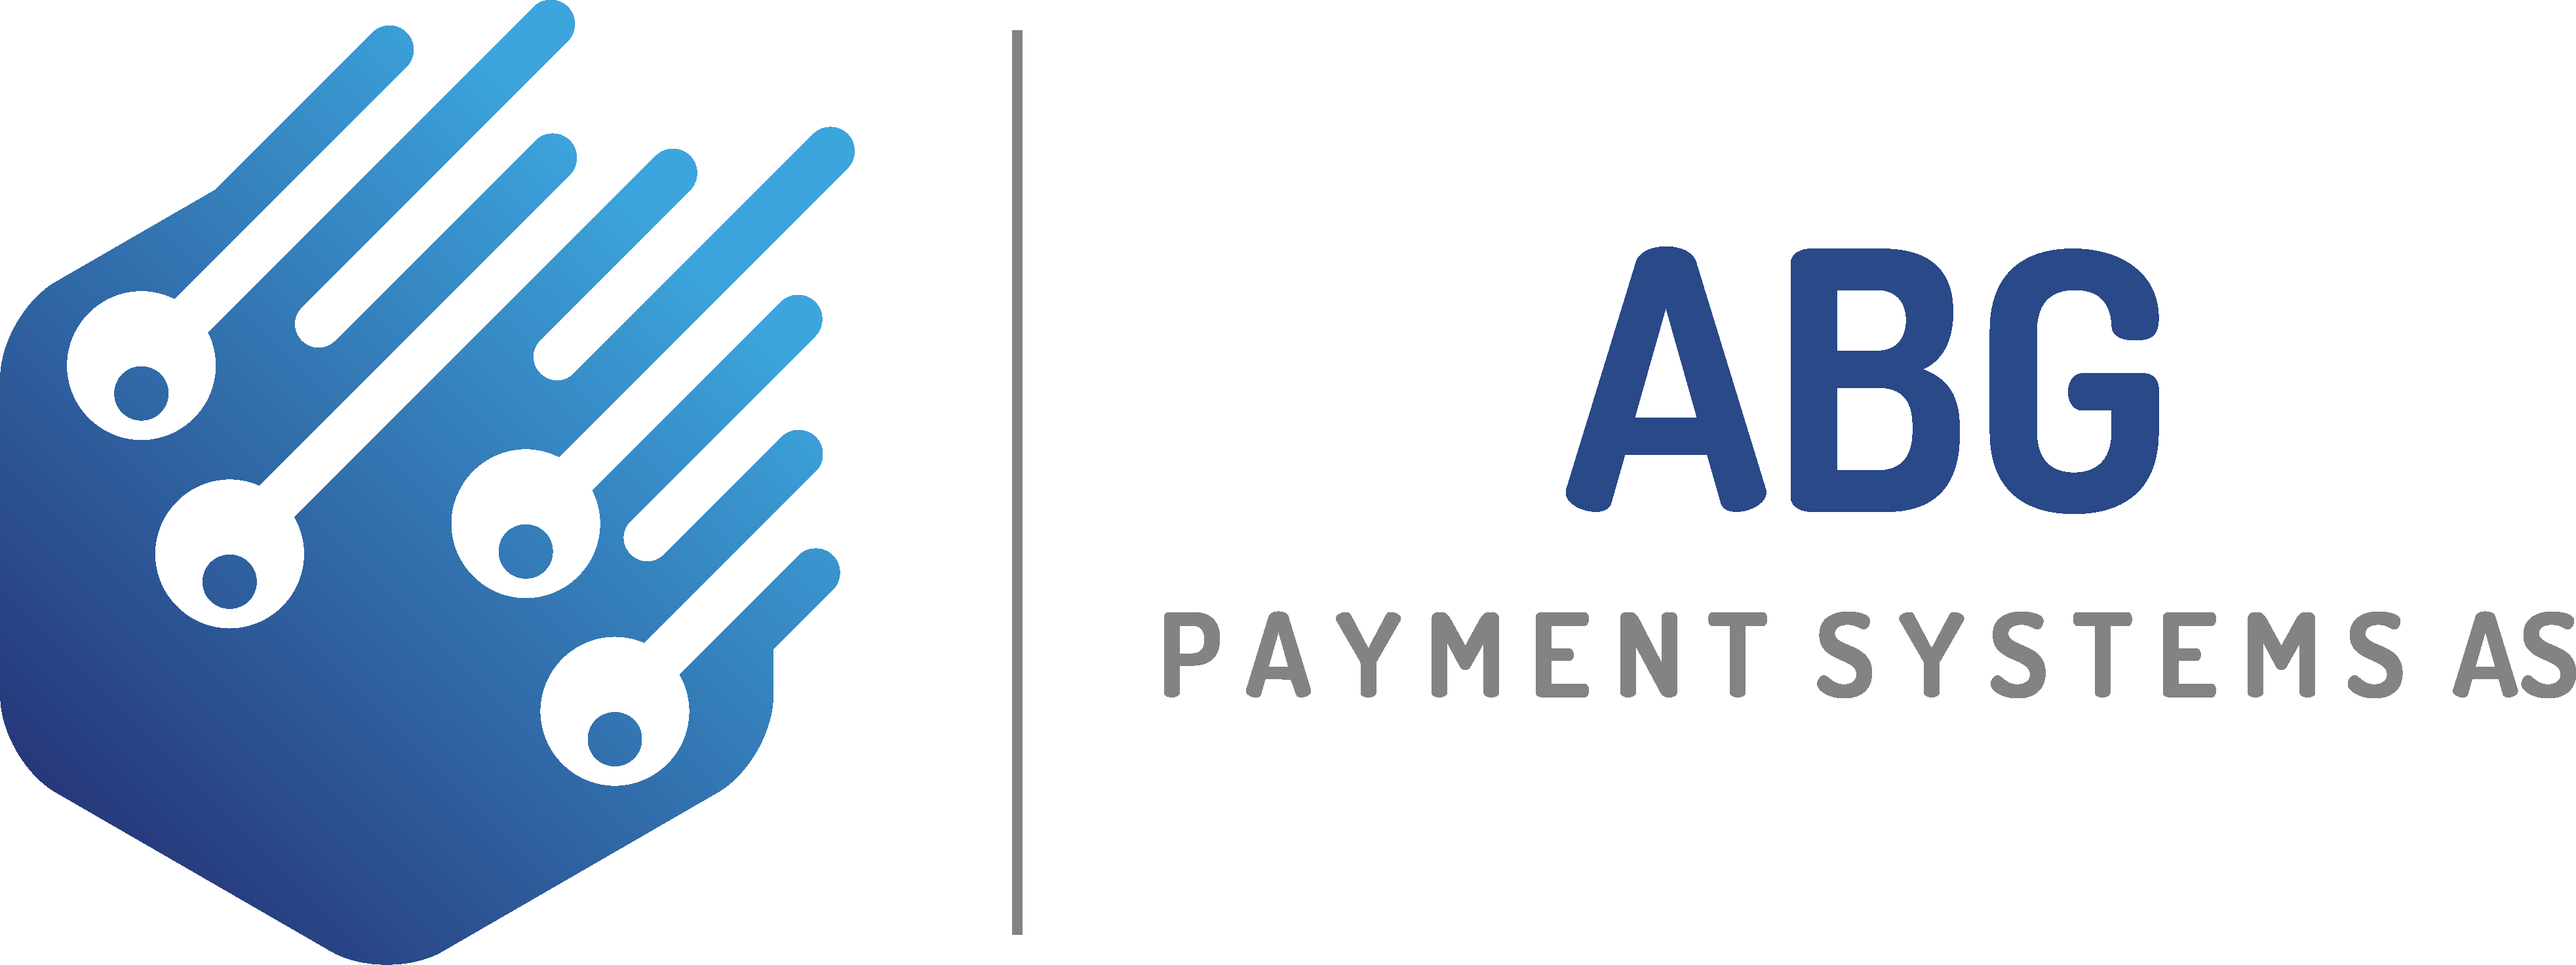 ABG Payment Systems AS